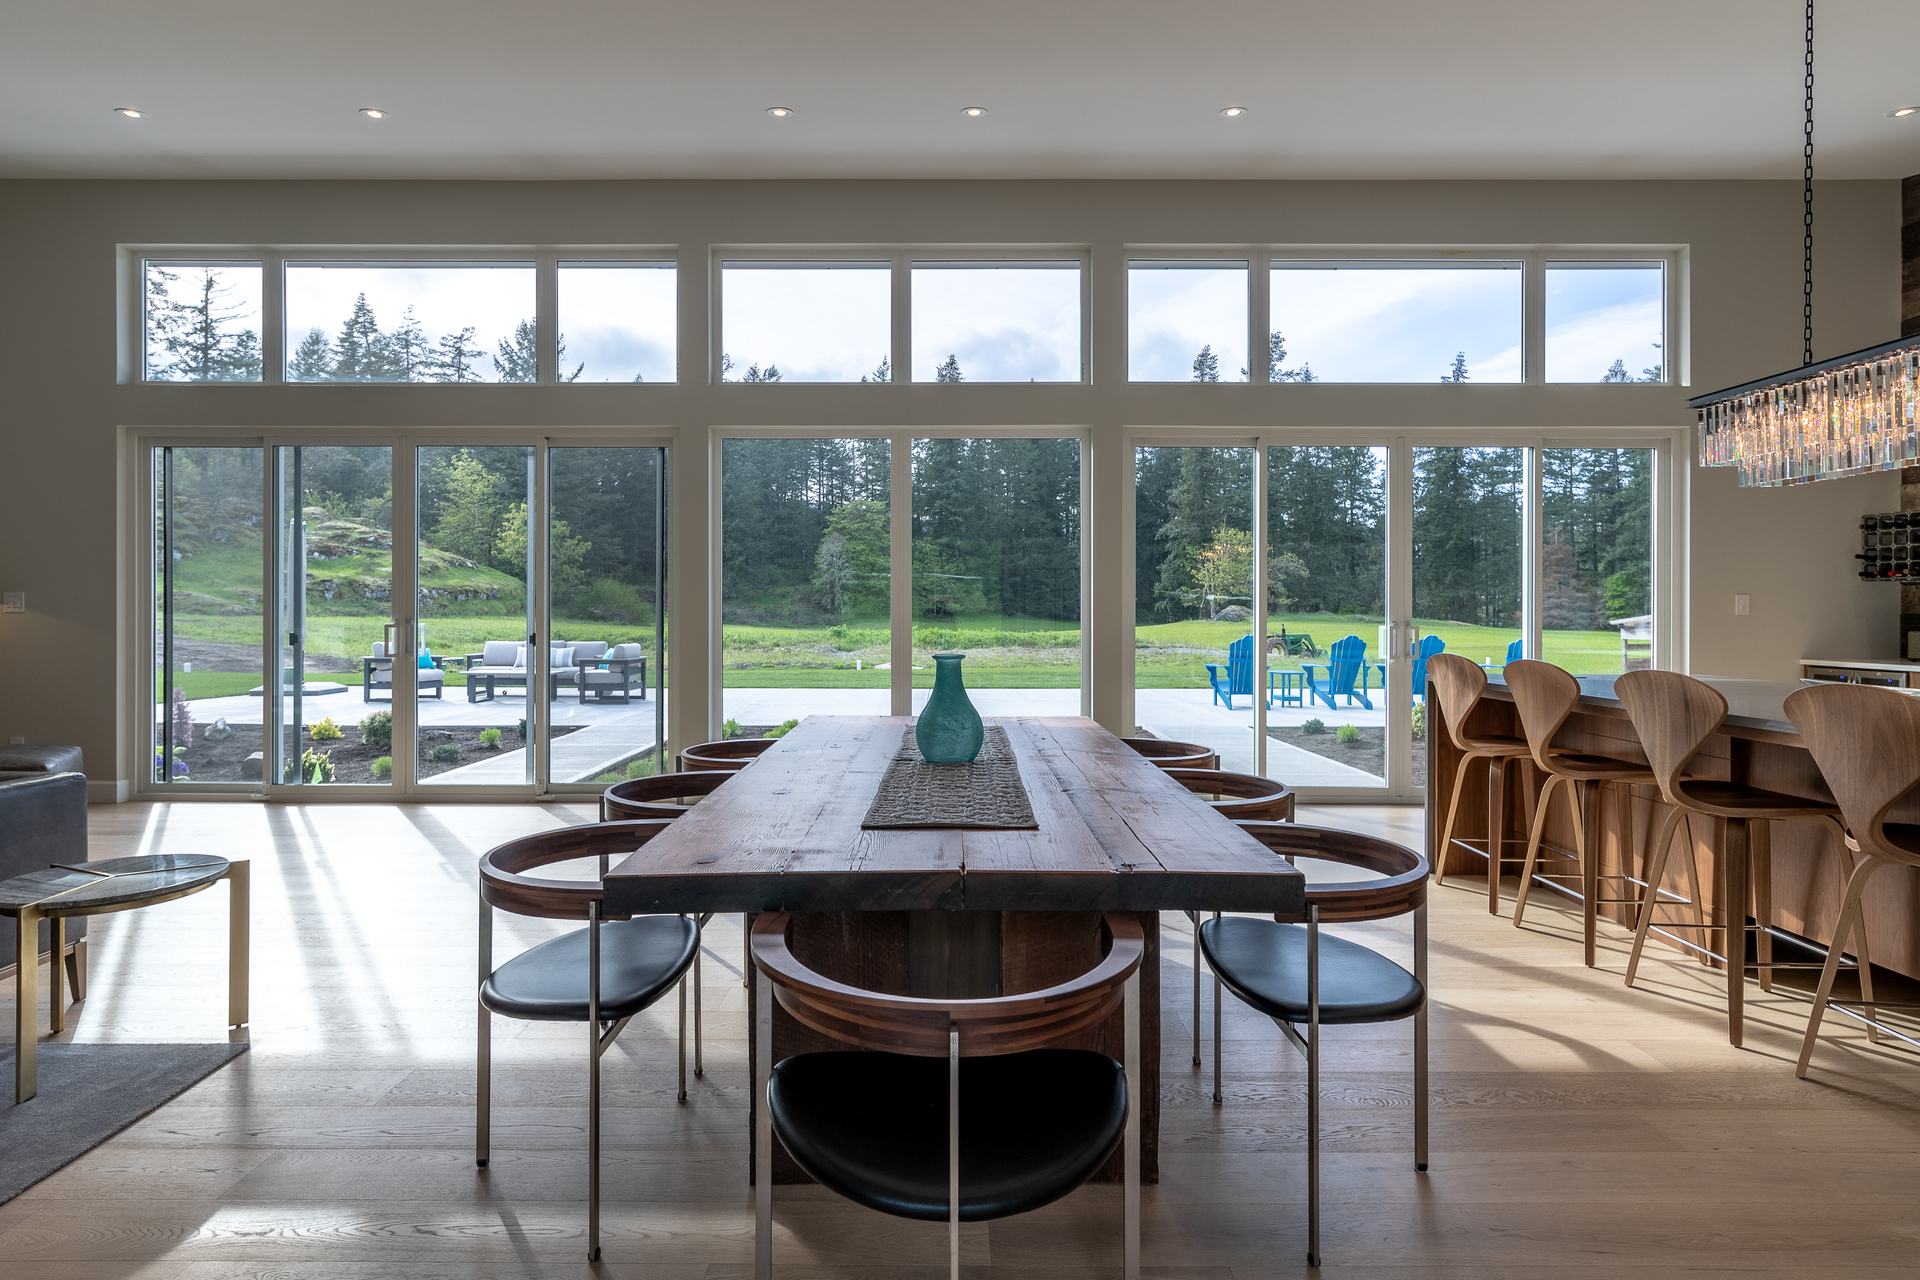 Main Dining Area & Westerly Patio at 5101 Jagtar's Way, Victoria, Vancouver Island,